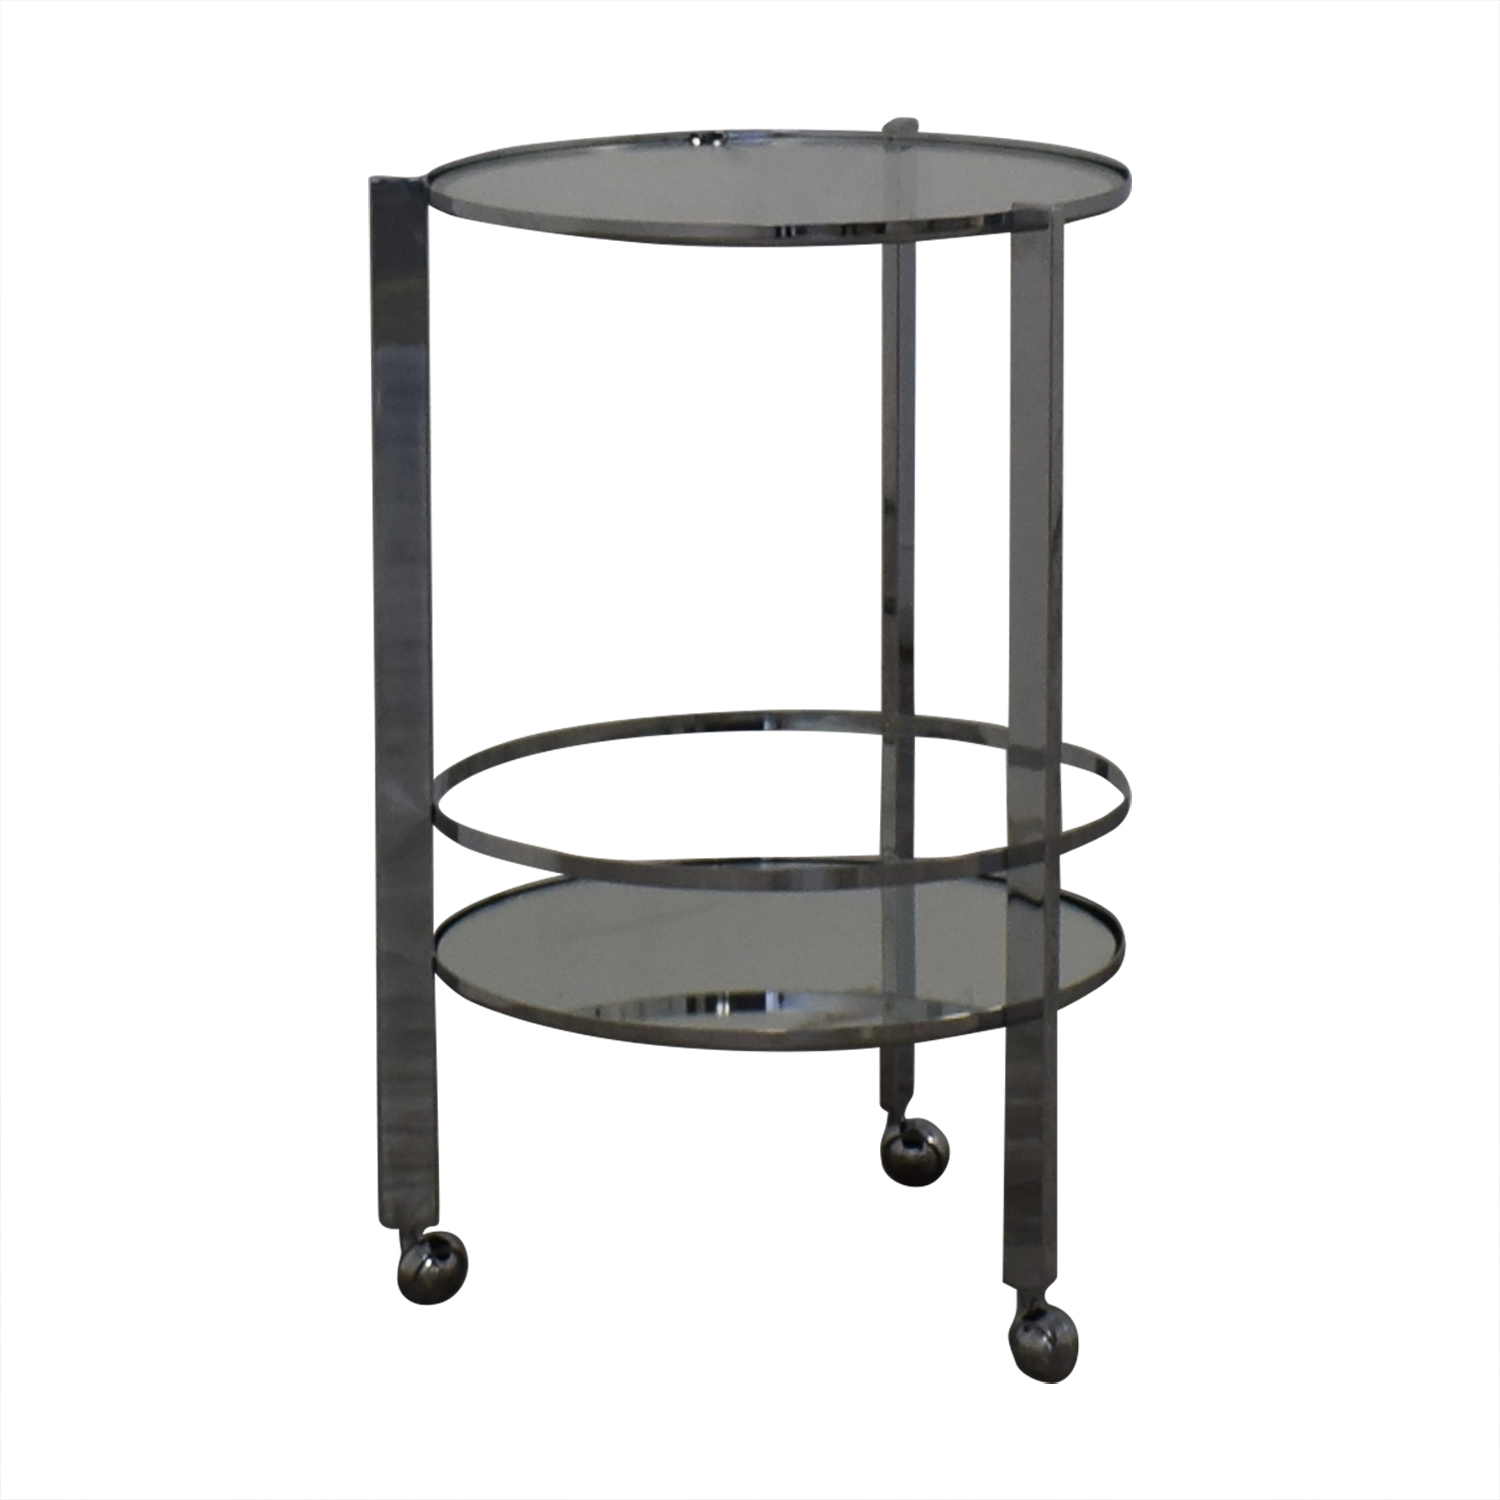 CB2 Round Metal and Glass Cocktail Table / Tables